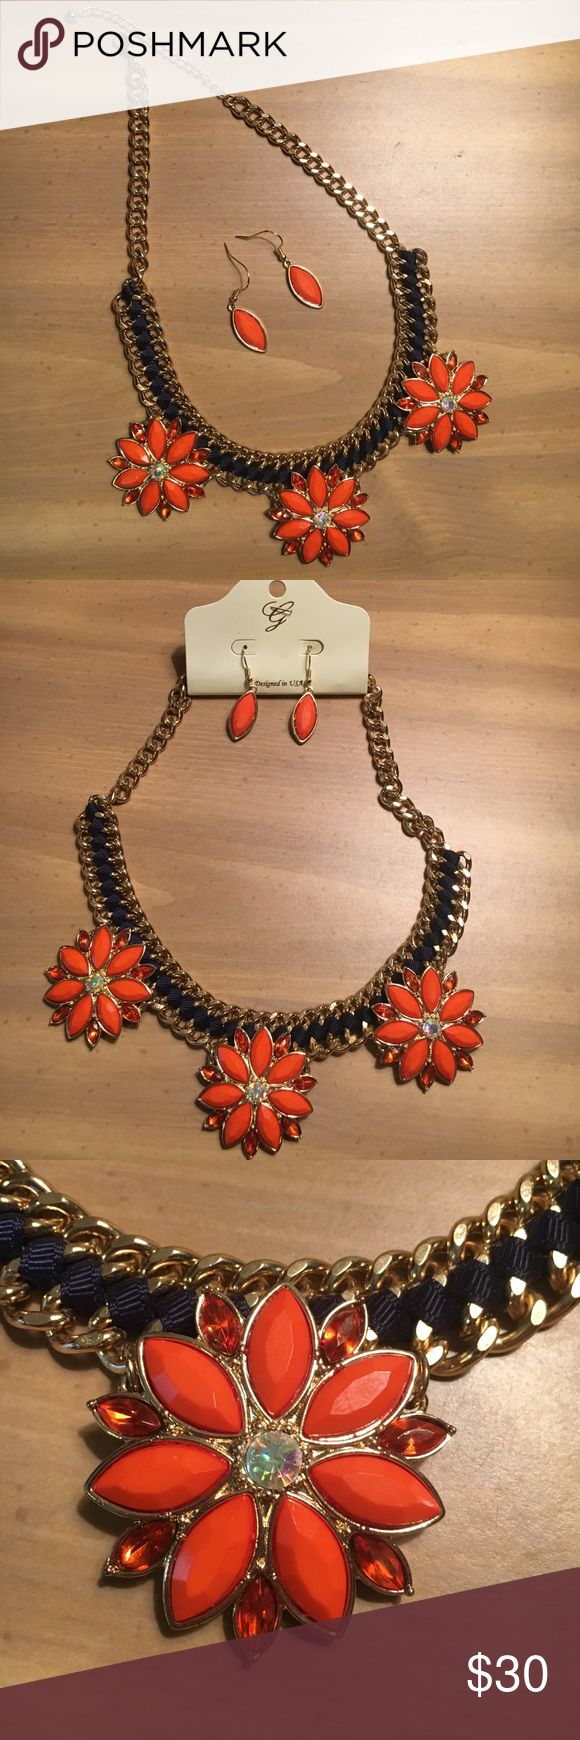 NWT flower statement necklace with earrings This gorgeous statement necklace and earring set has never been worn except to take the picture of the necklace on! Necklace: Gold chain with navy blue fabric braiding and 3 orange jeweled flowers. Earrings: orange stone surrounded by gold lining. Lead & nickel compliant. Great for Auburn football or sorority recruitment! Jewelry Necklaces